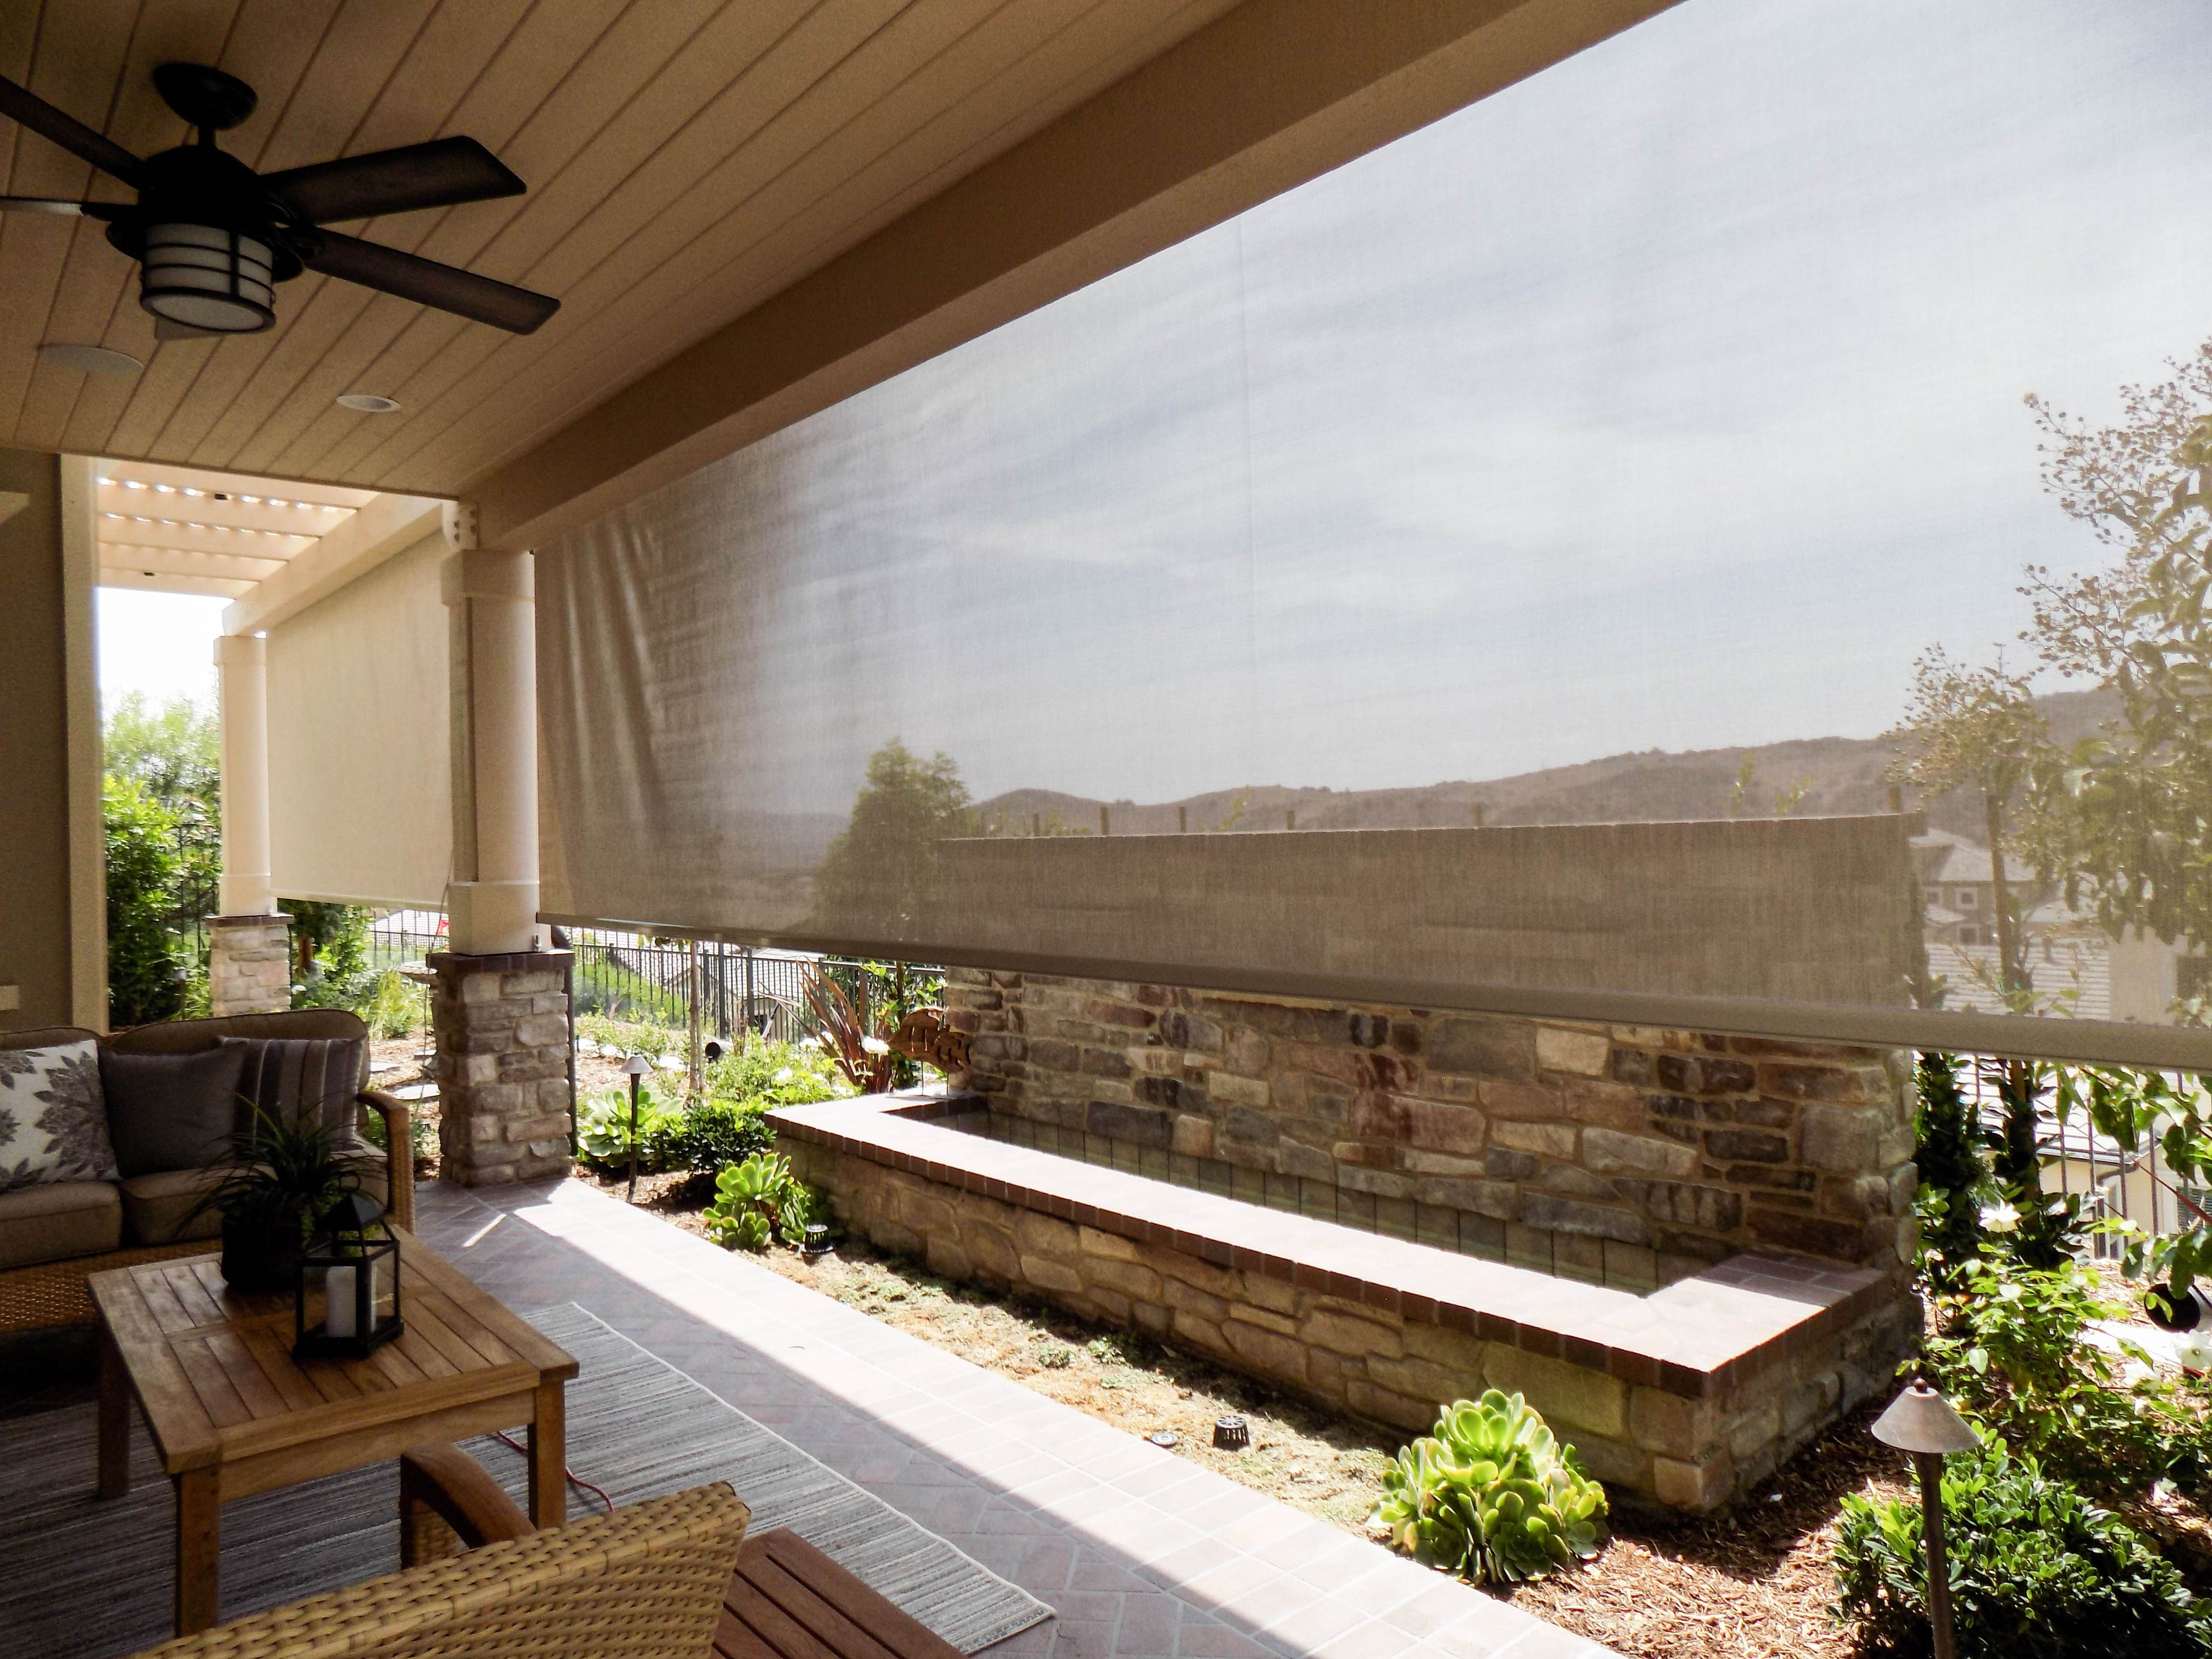 In Orange County We Installed A Retractable Awning With A Drop Valence And Two Motorized Power Screens This Solar Screens Outdoor Living Outdoor Living Space